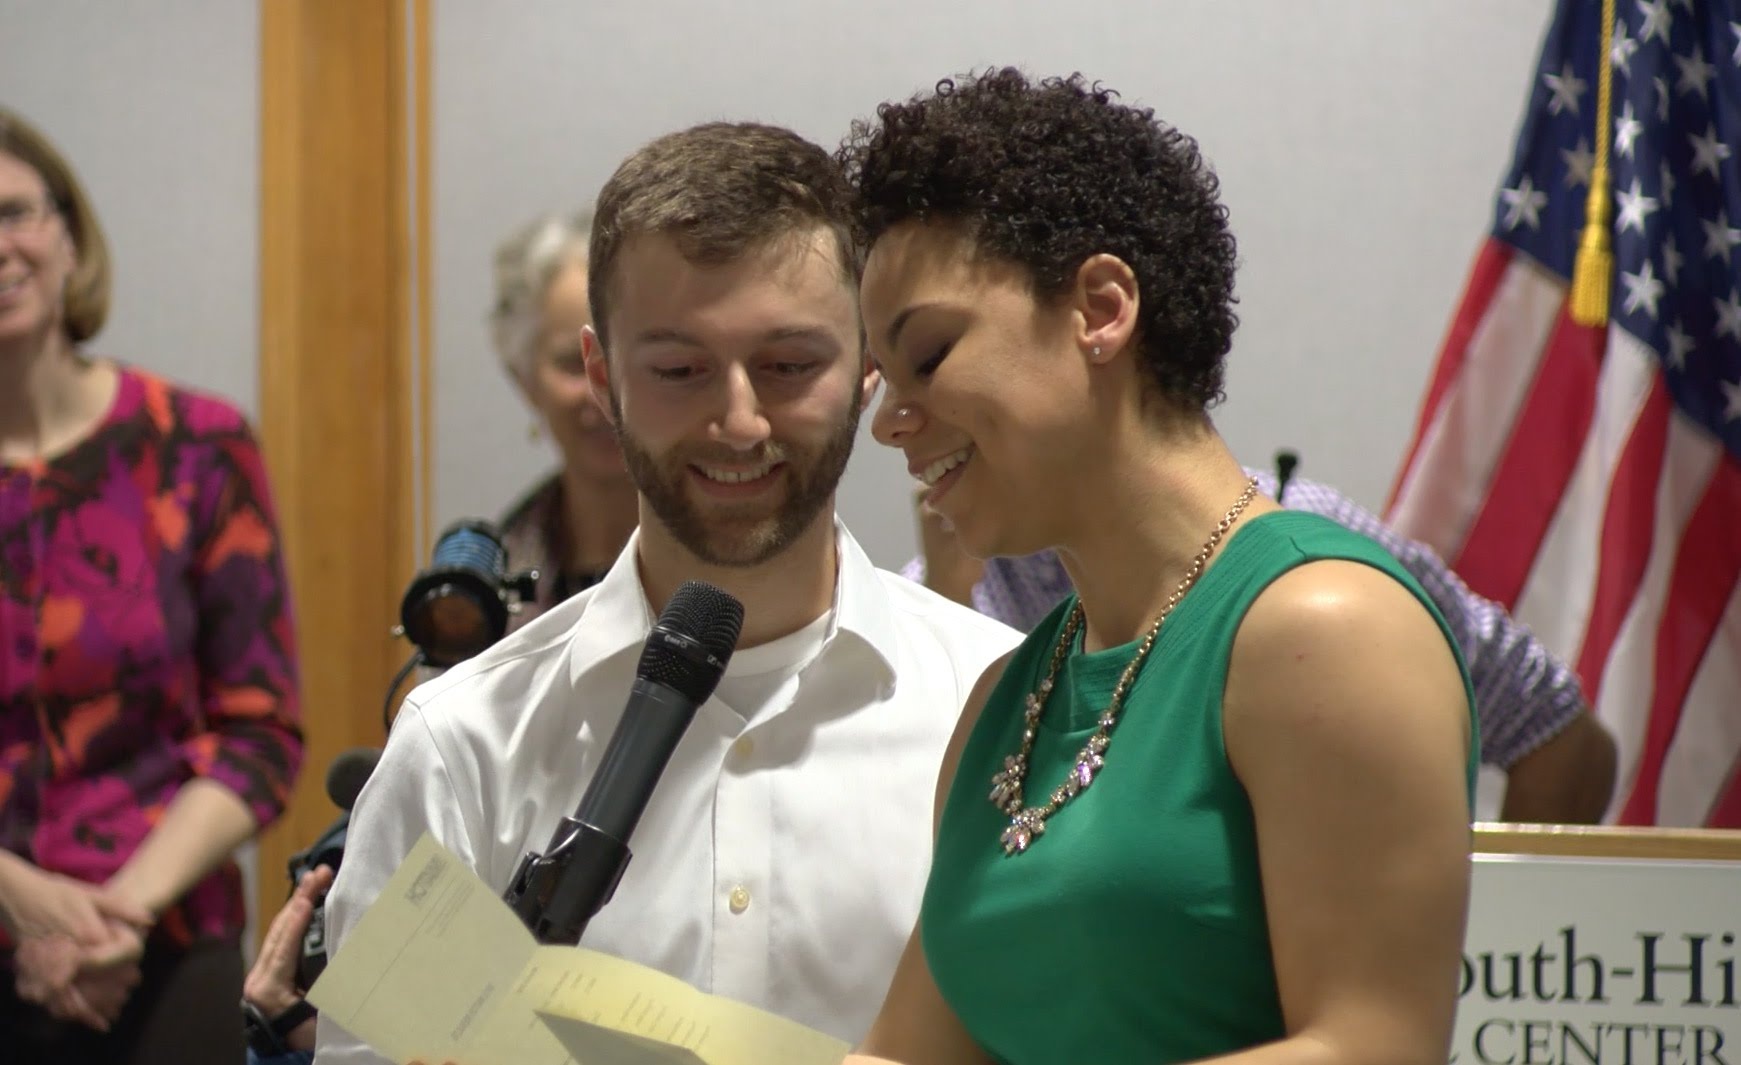 Match Day 2015: Jessica and David Fried